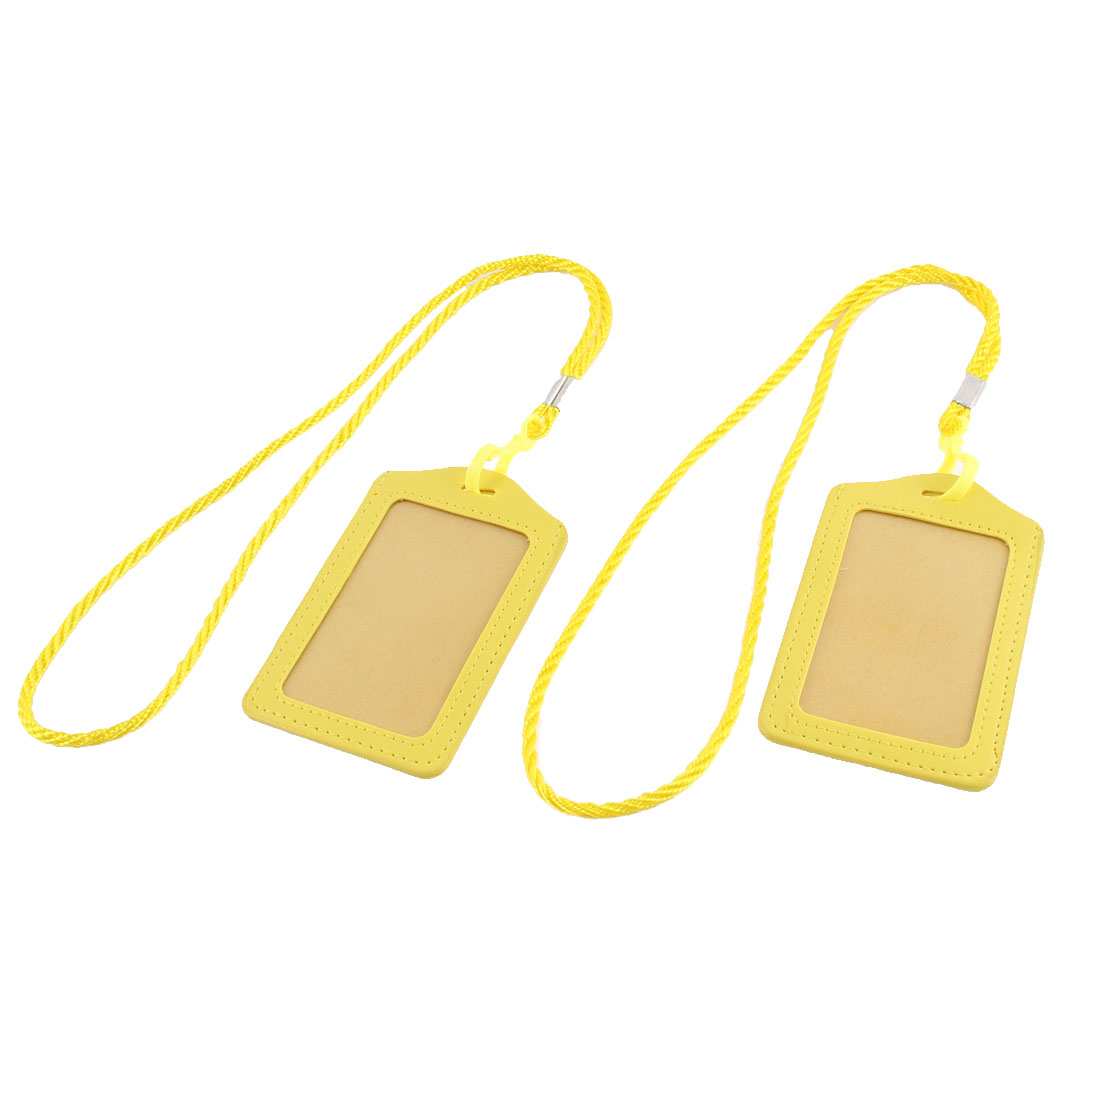 Faux Leather Lanyard Vertical Office Name ID Card Badge Holder Container Yellow 2pcs